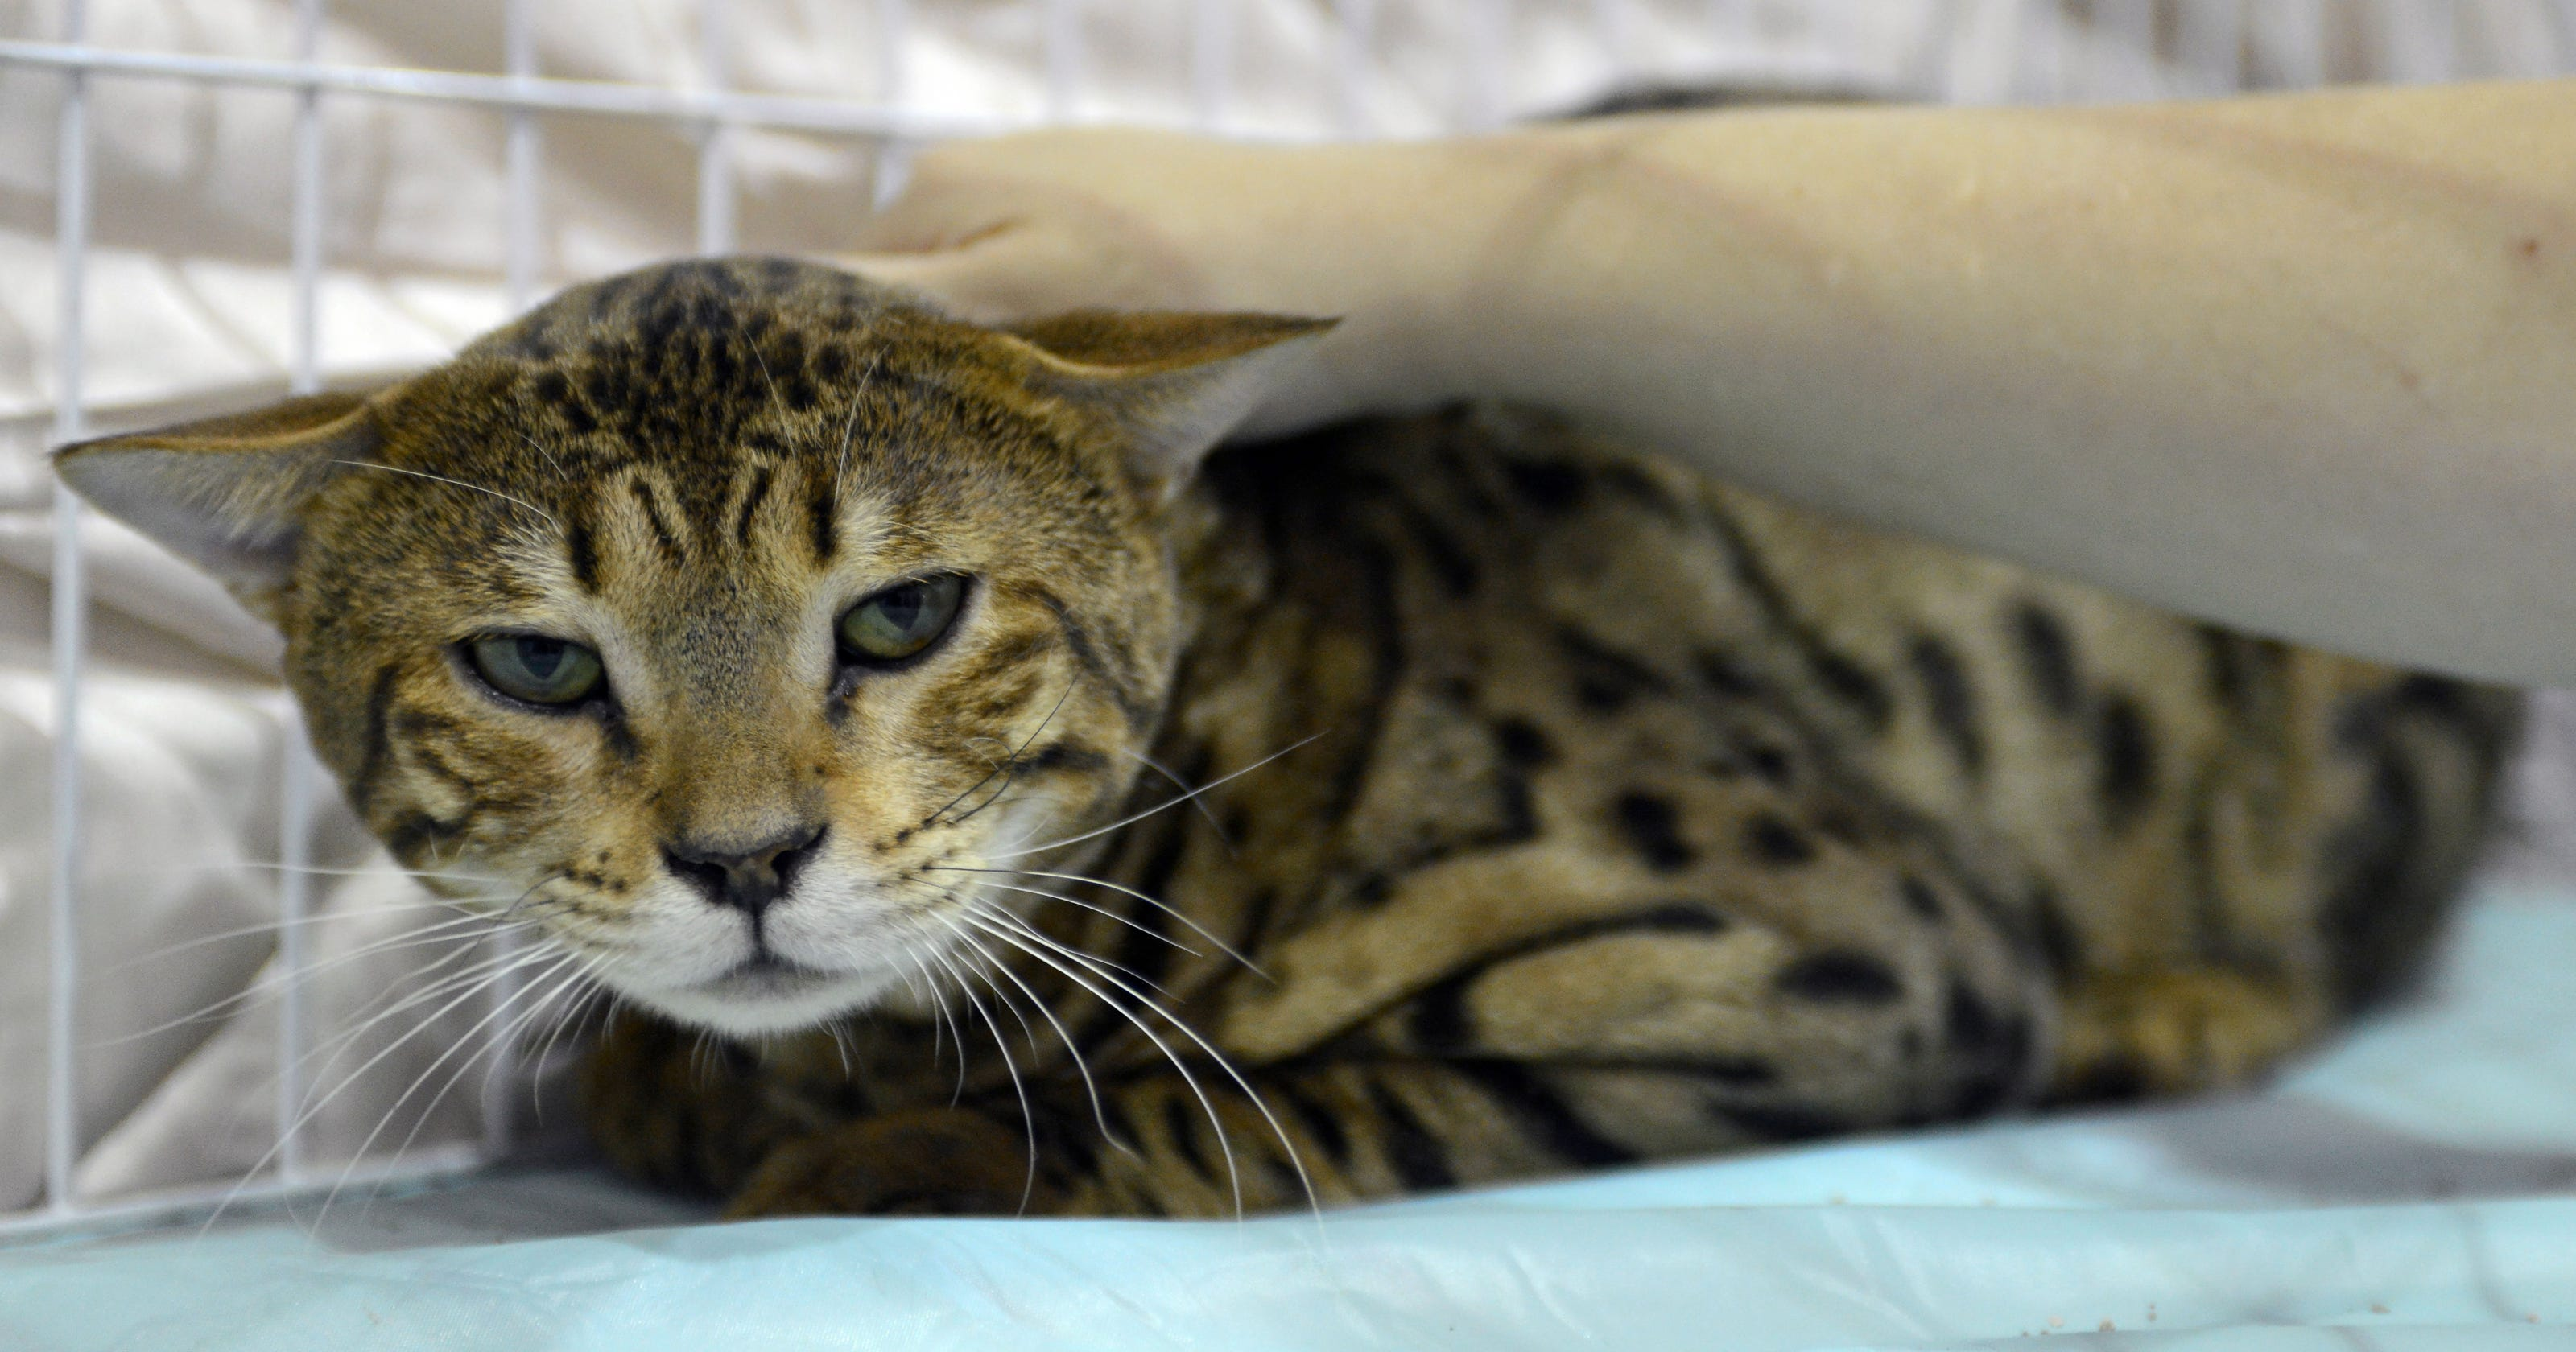 5 things to know about savannah cats